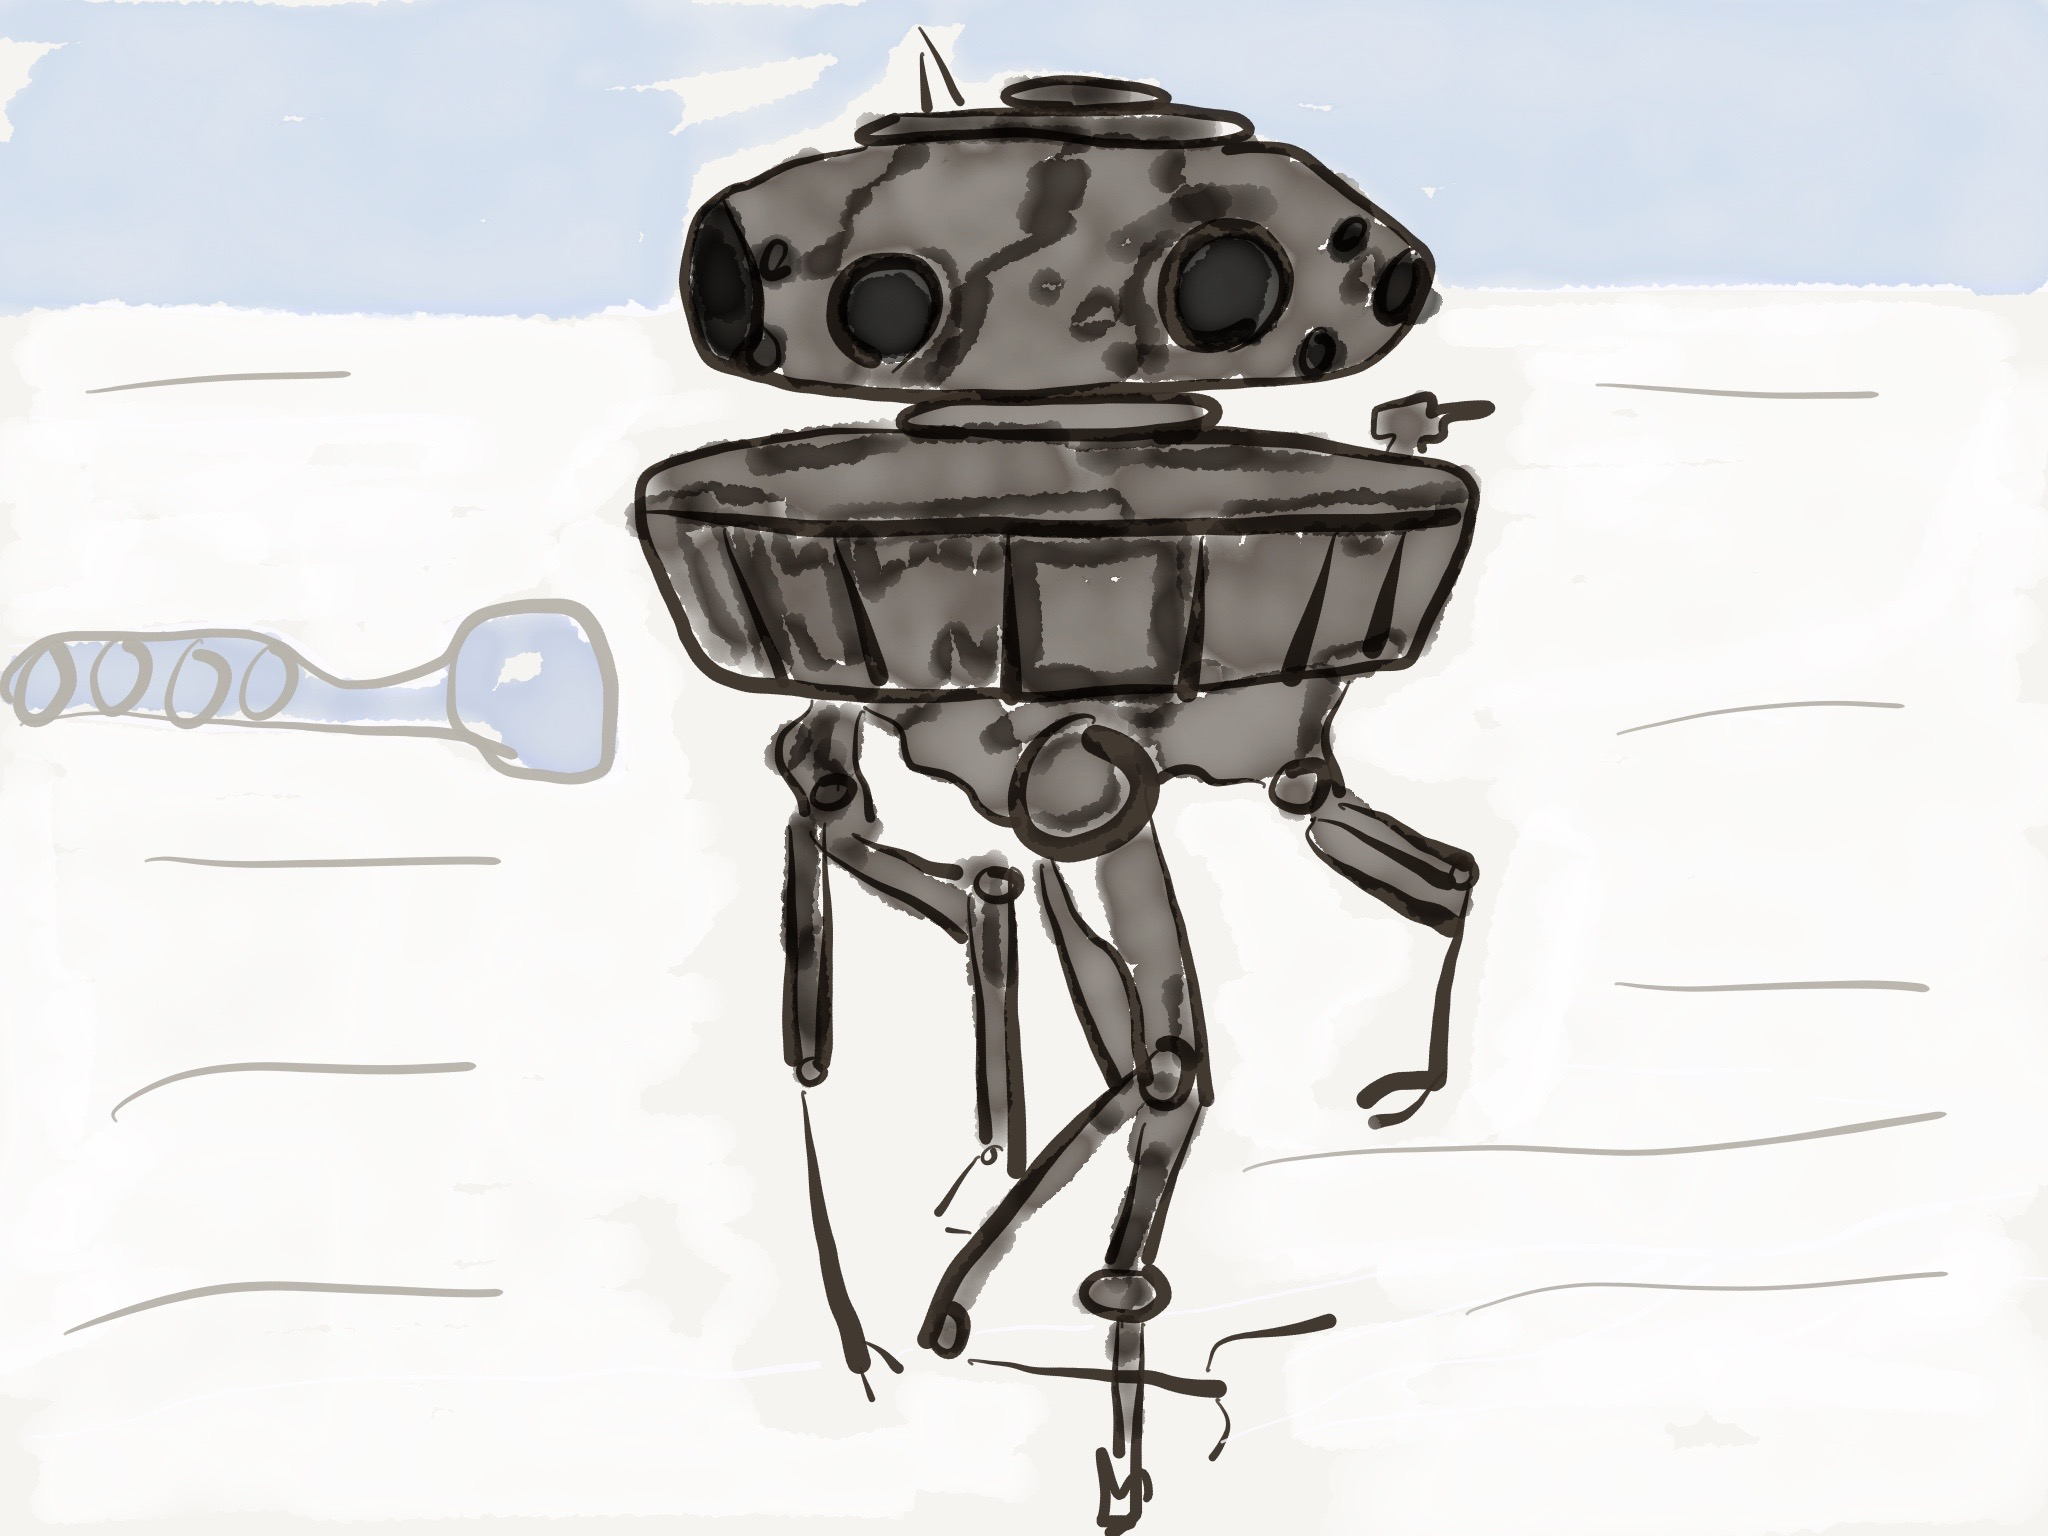 The Probe Droid Reaches Peak Tangent